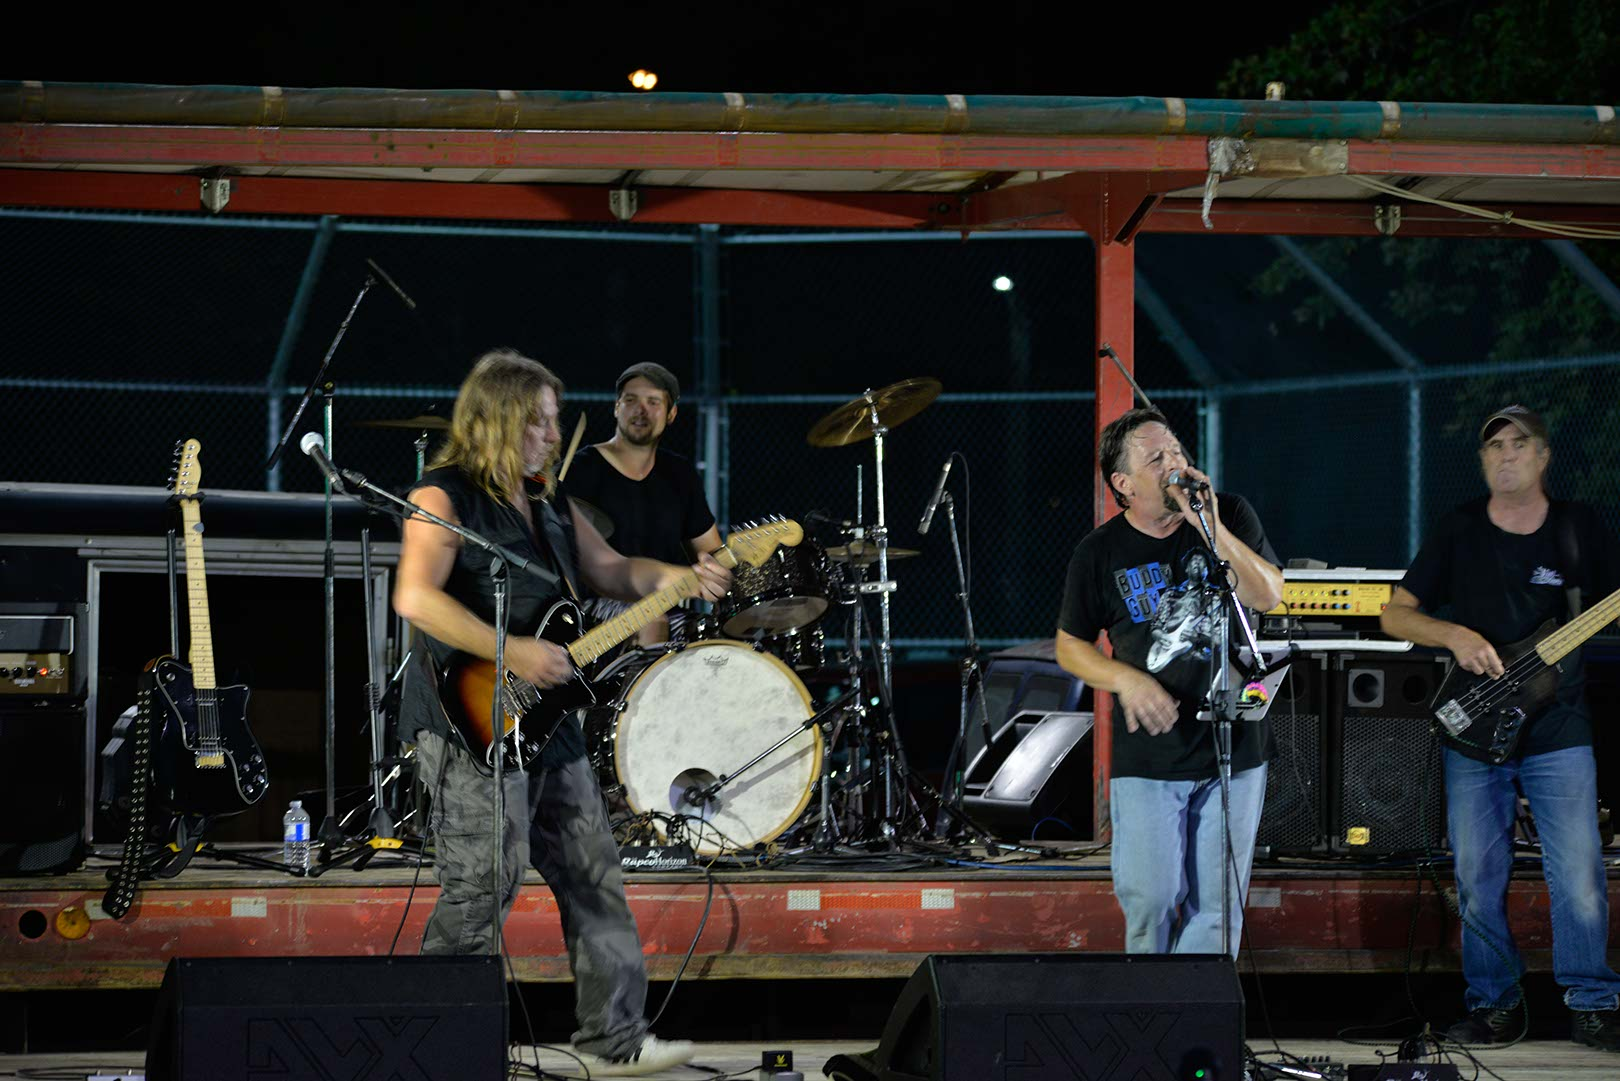 Beer Garden Performers - live music at Beeton Fair